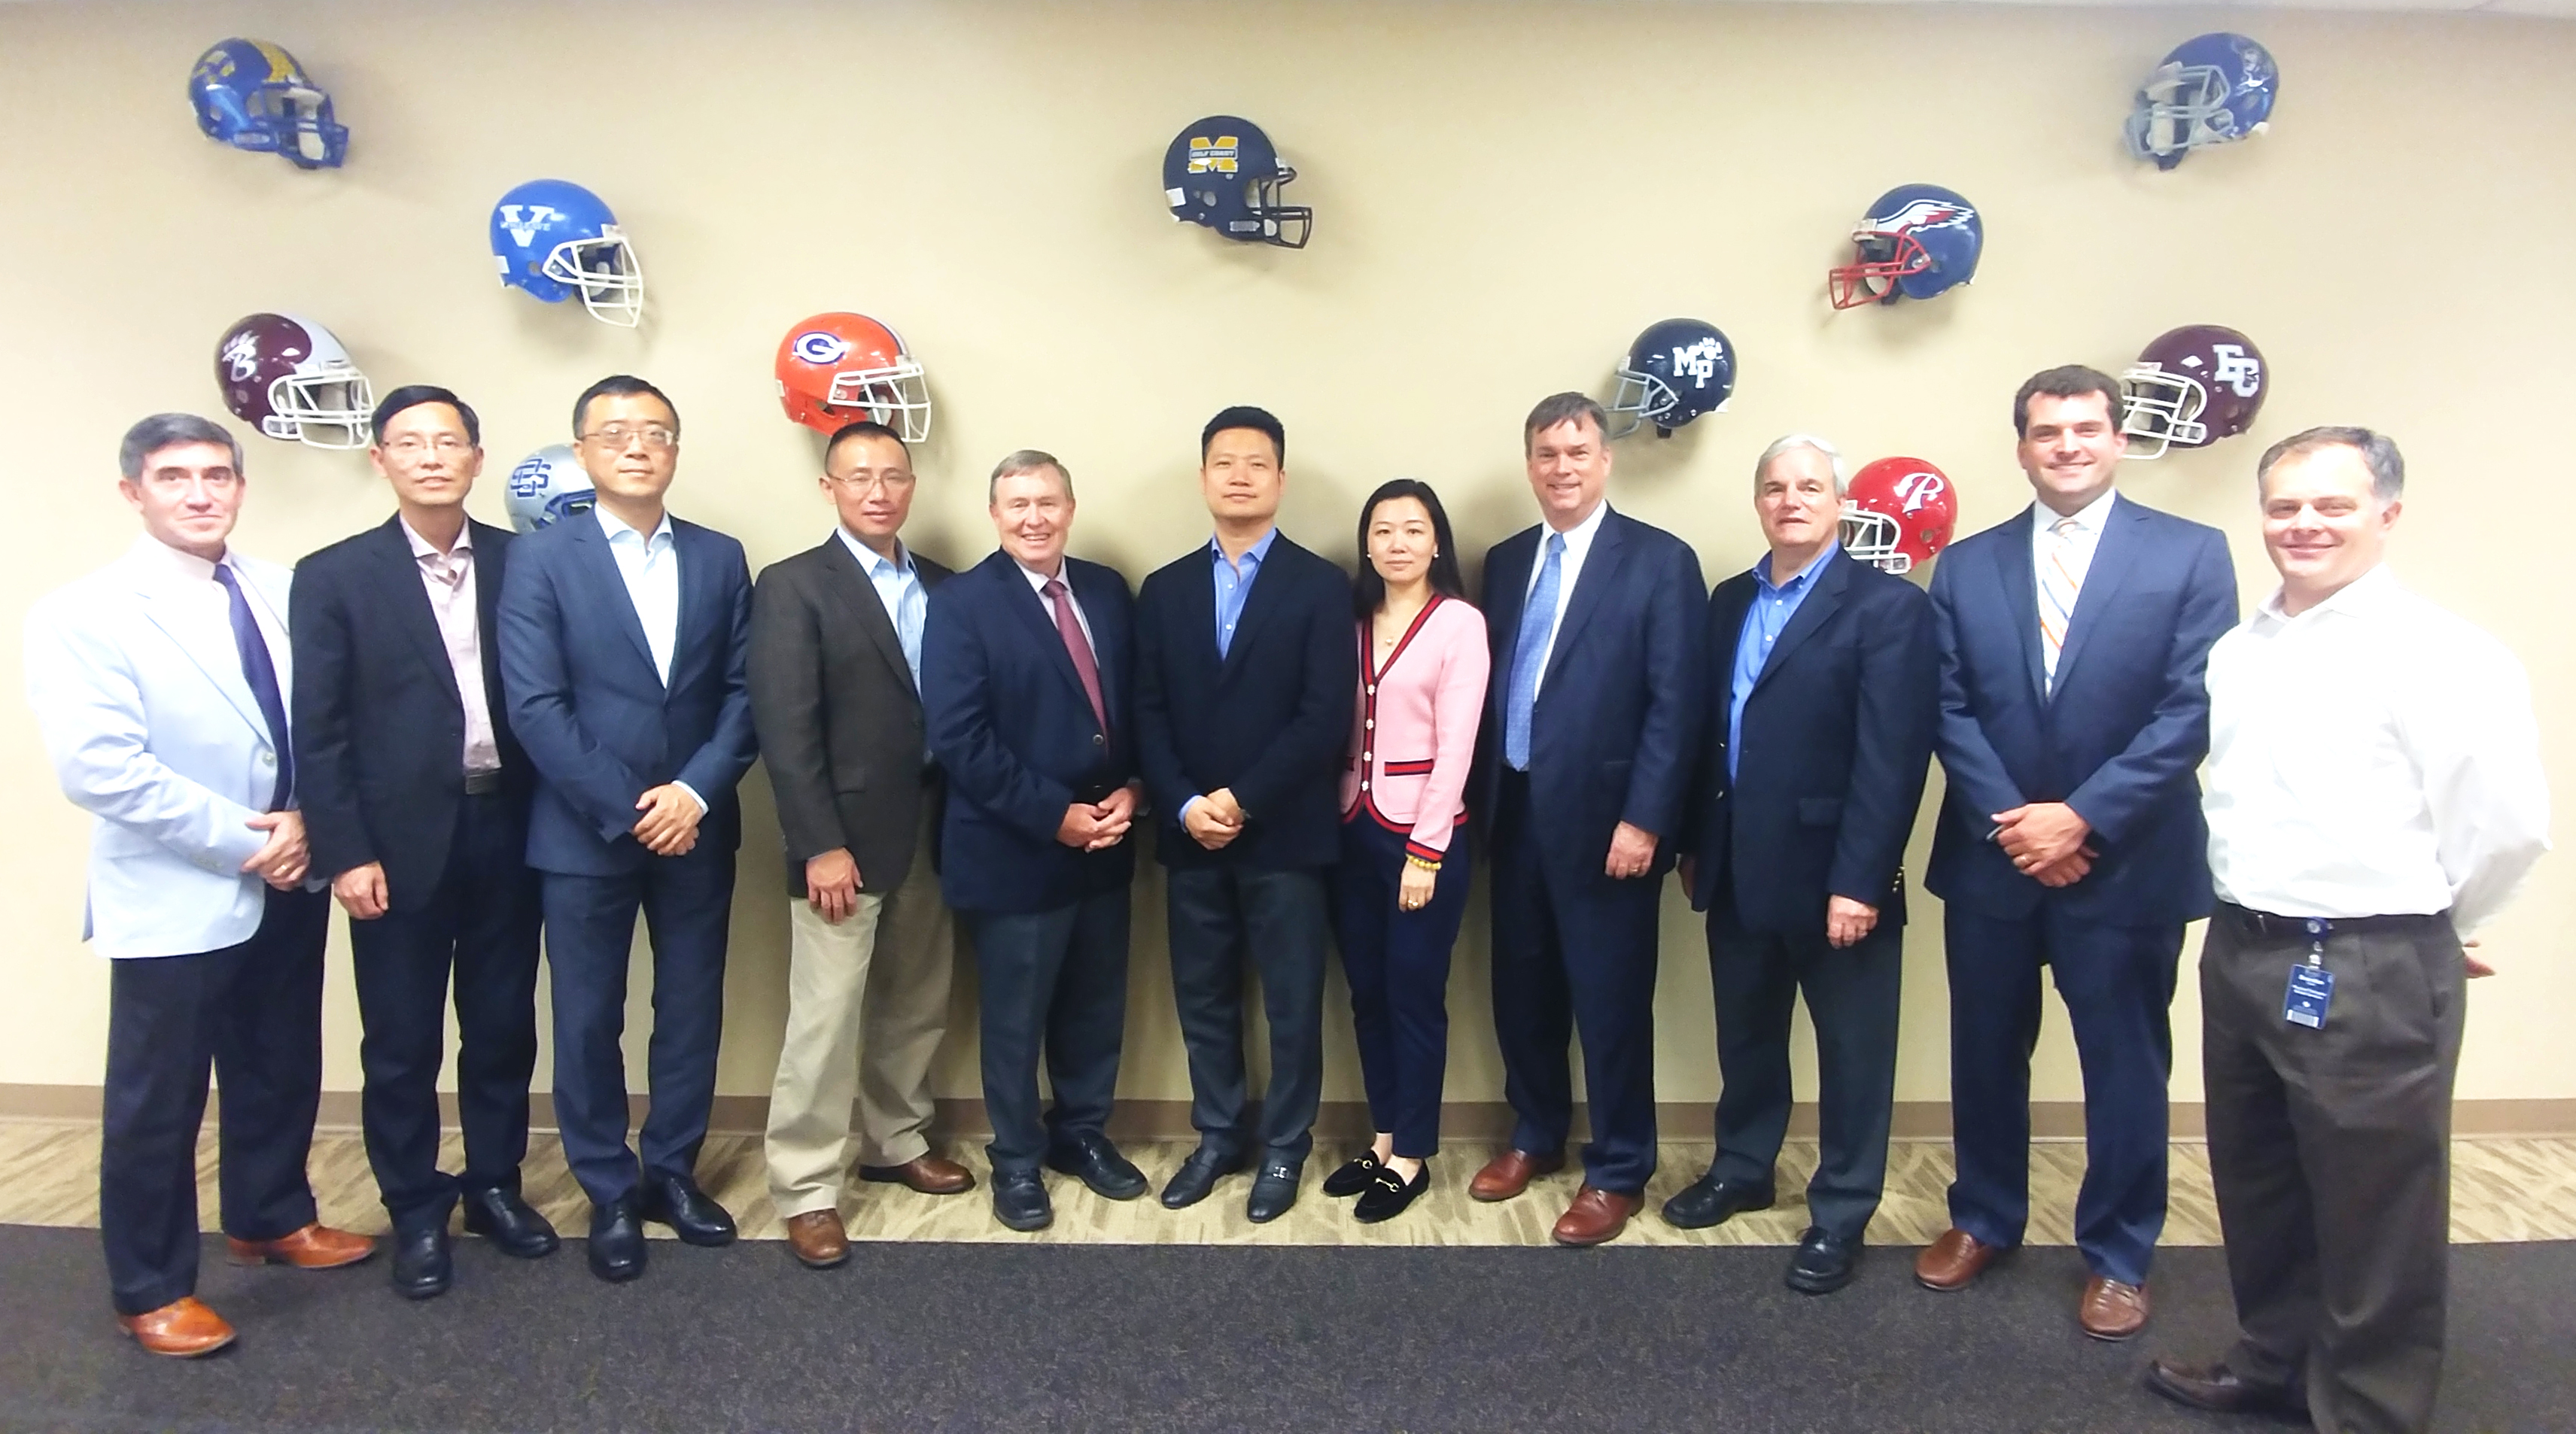 Group of people posing for picture in front of a wall with football helmets mounted on the wall in the background